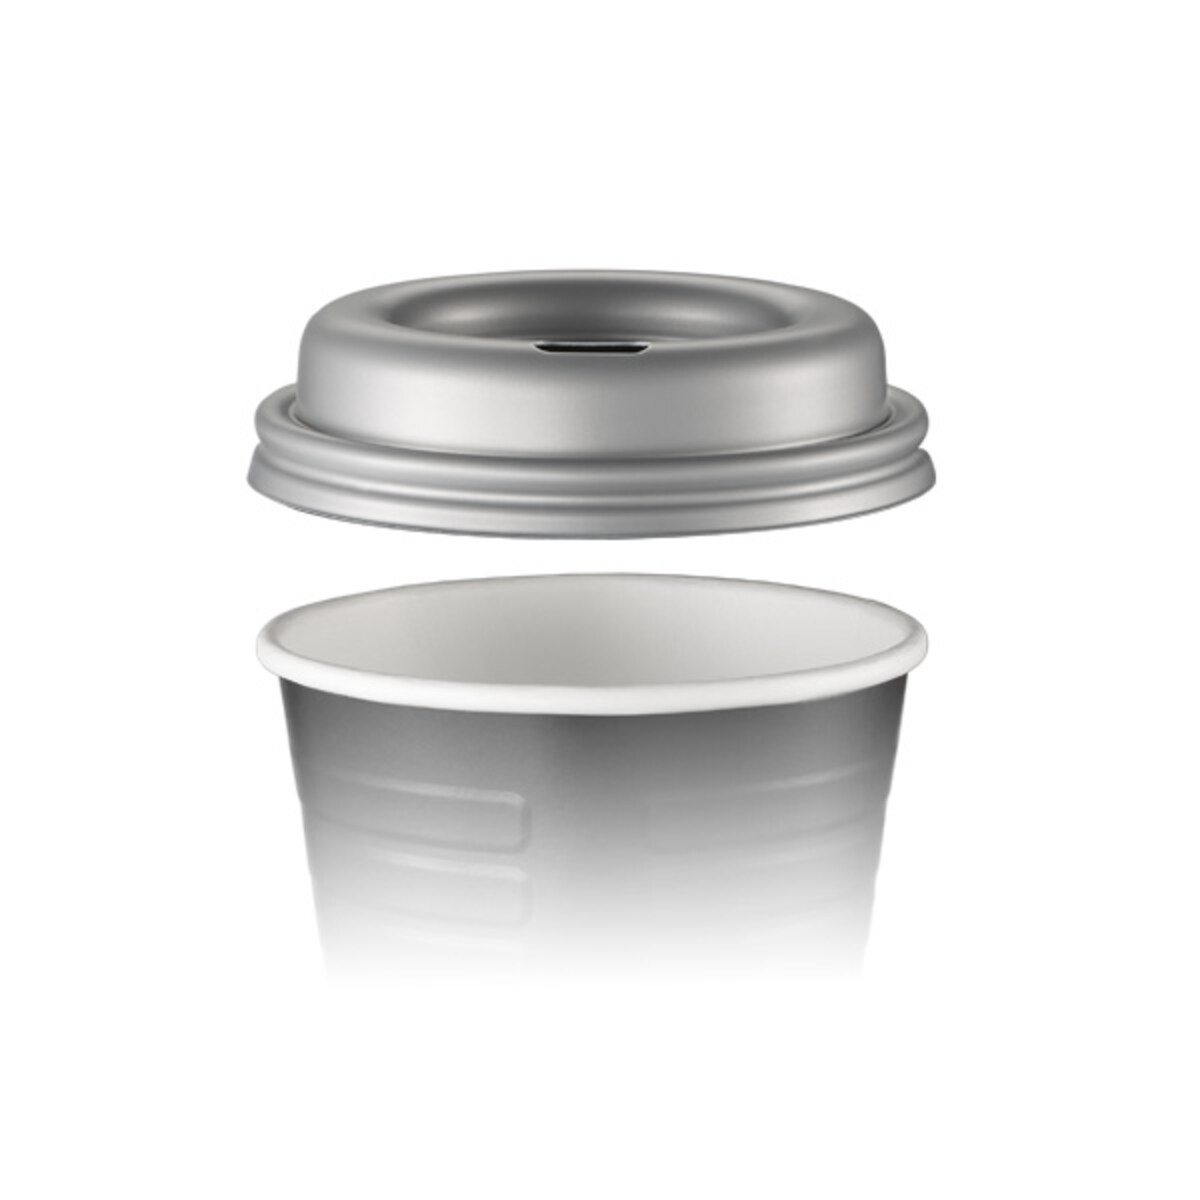 Nespresso Take away Lid - Extra-Large